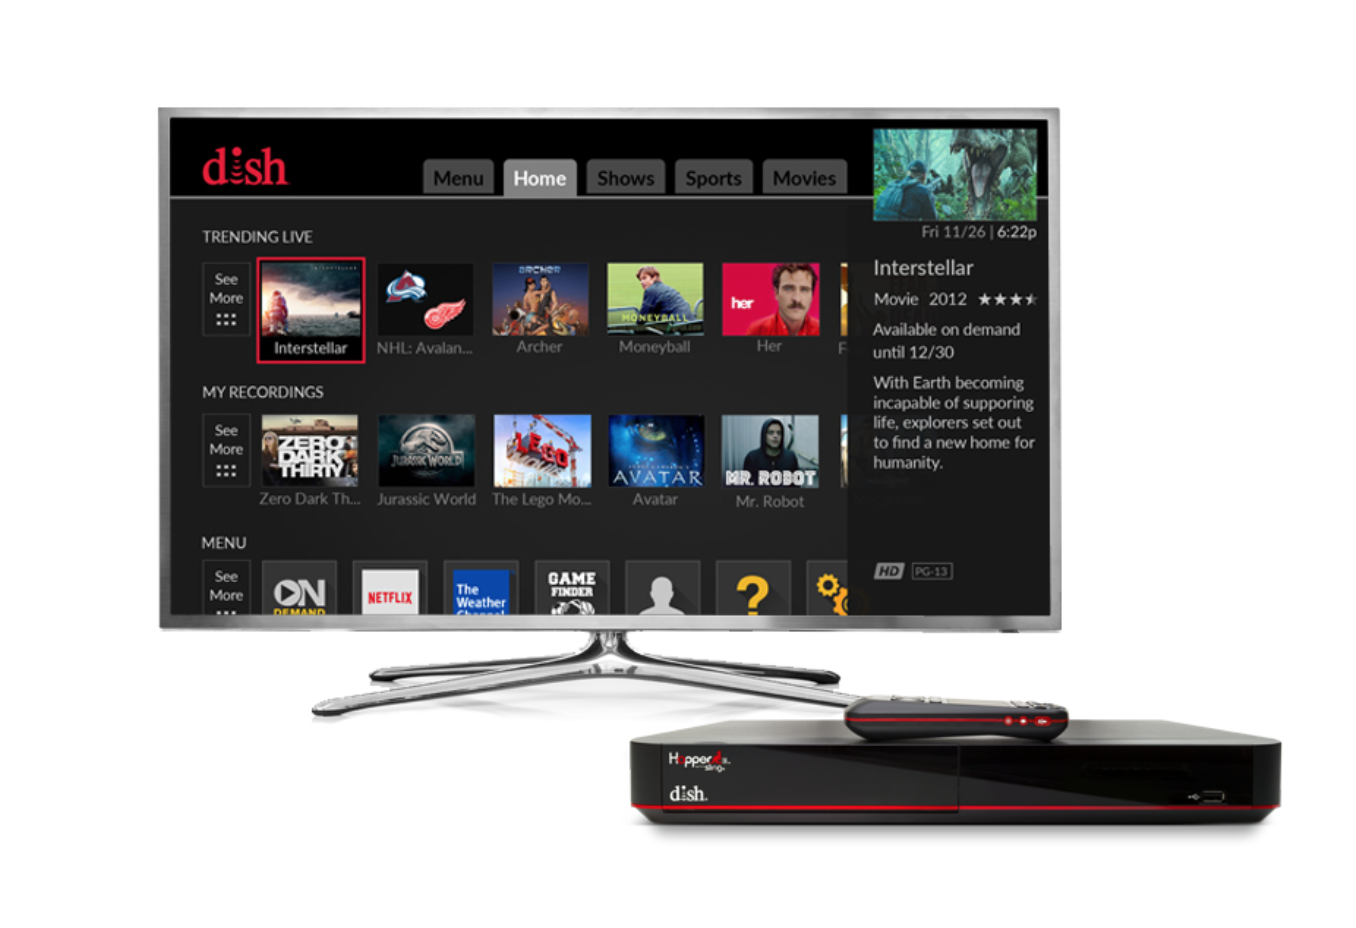 dish network internet gaming review